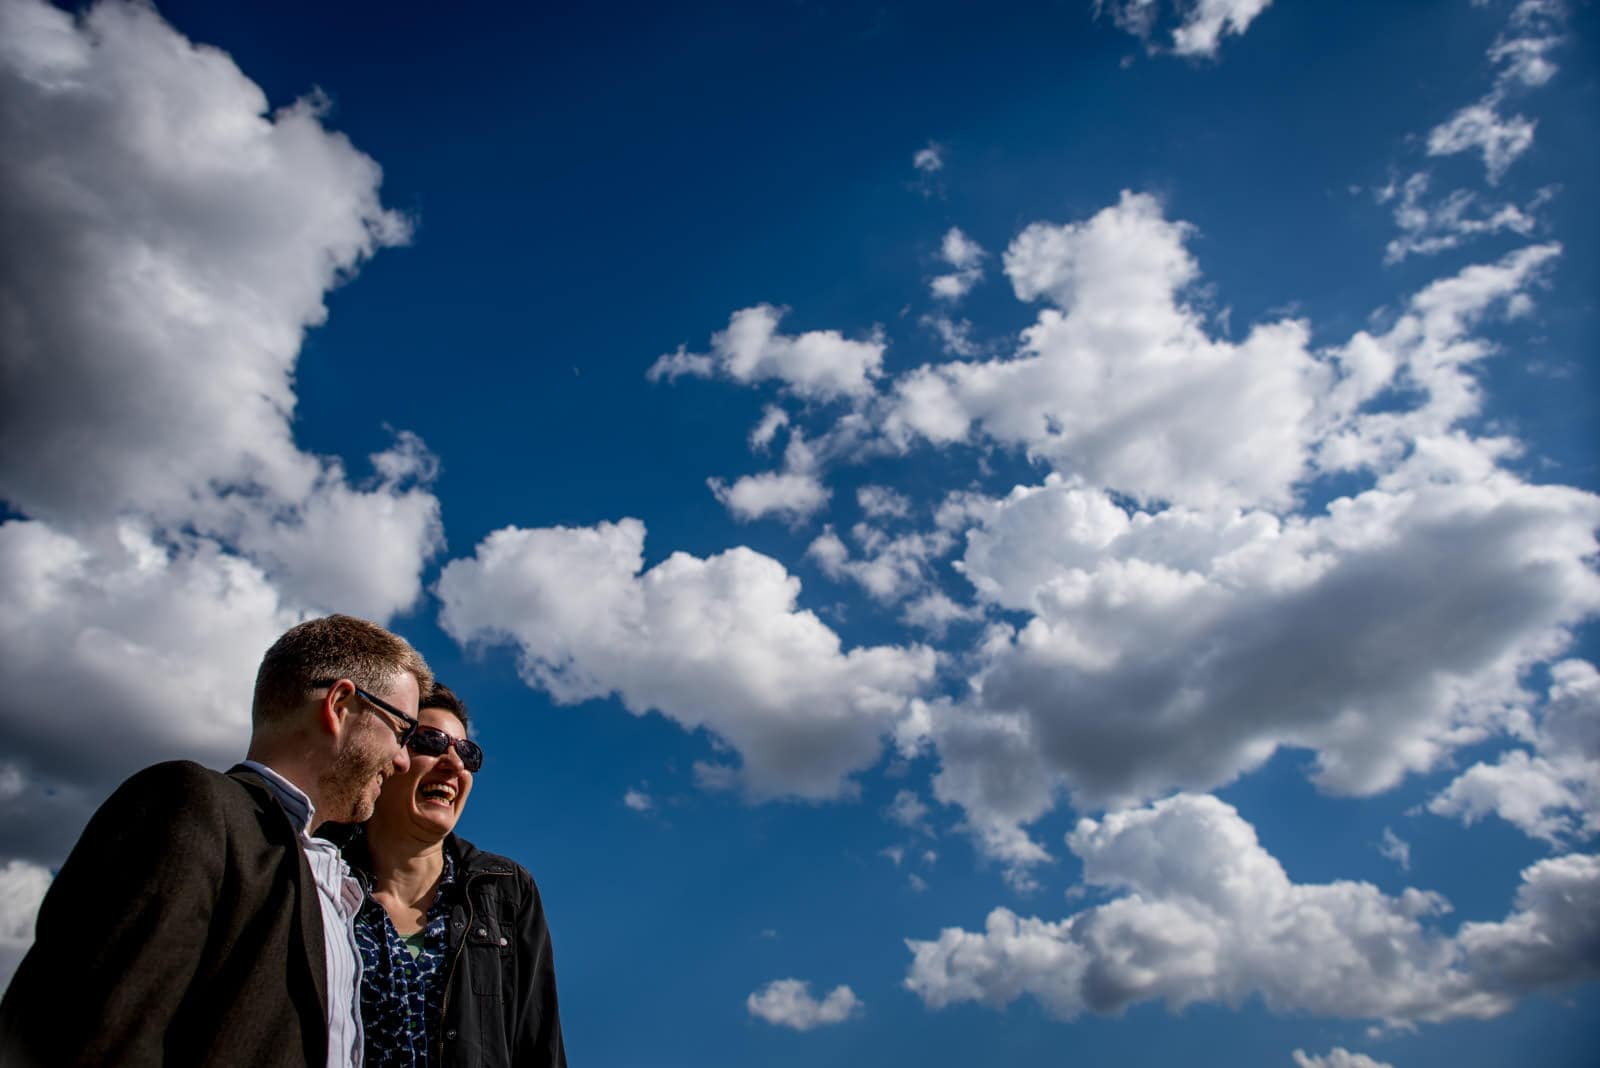 Smiling couple with blue sky and clouds